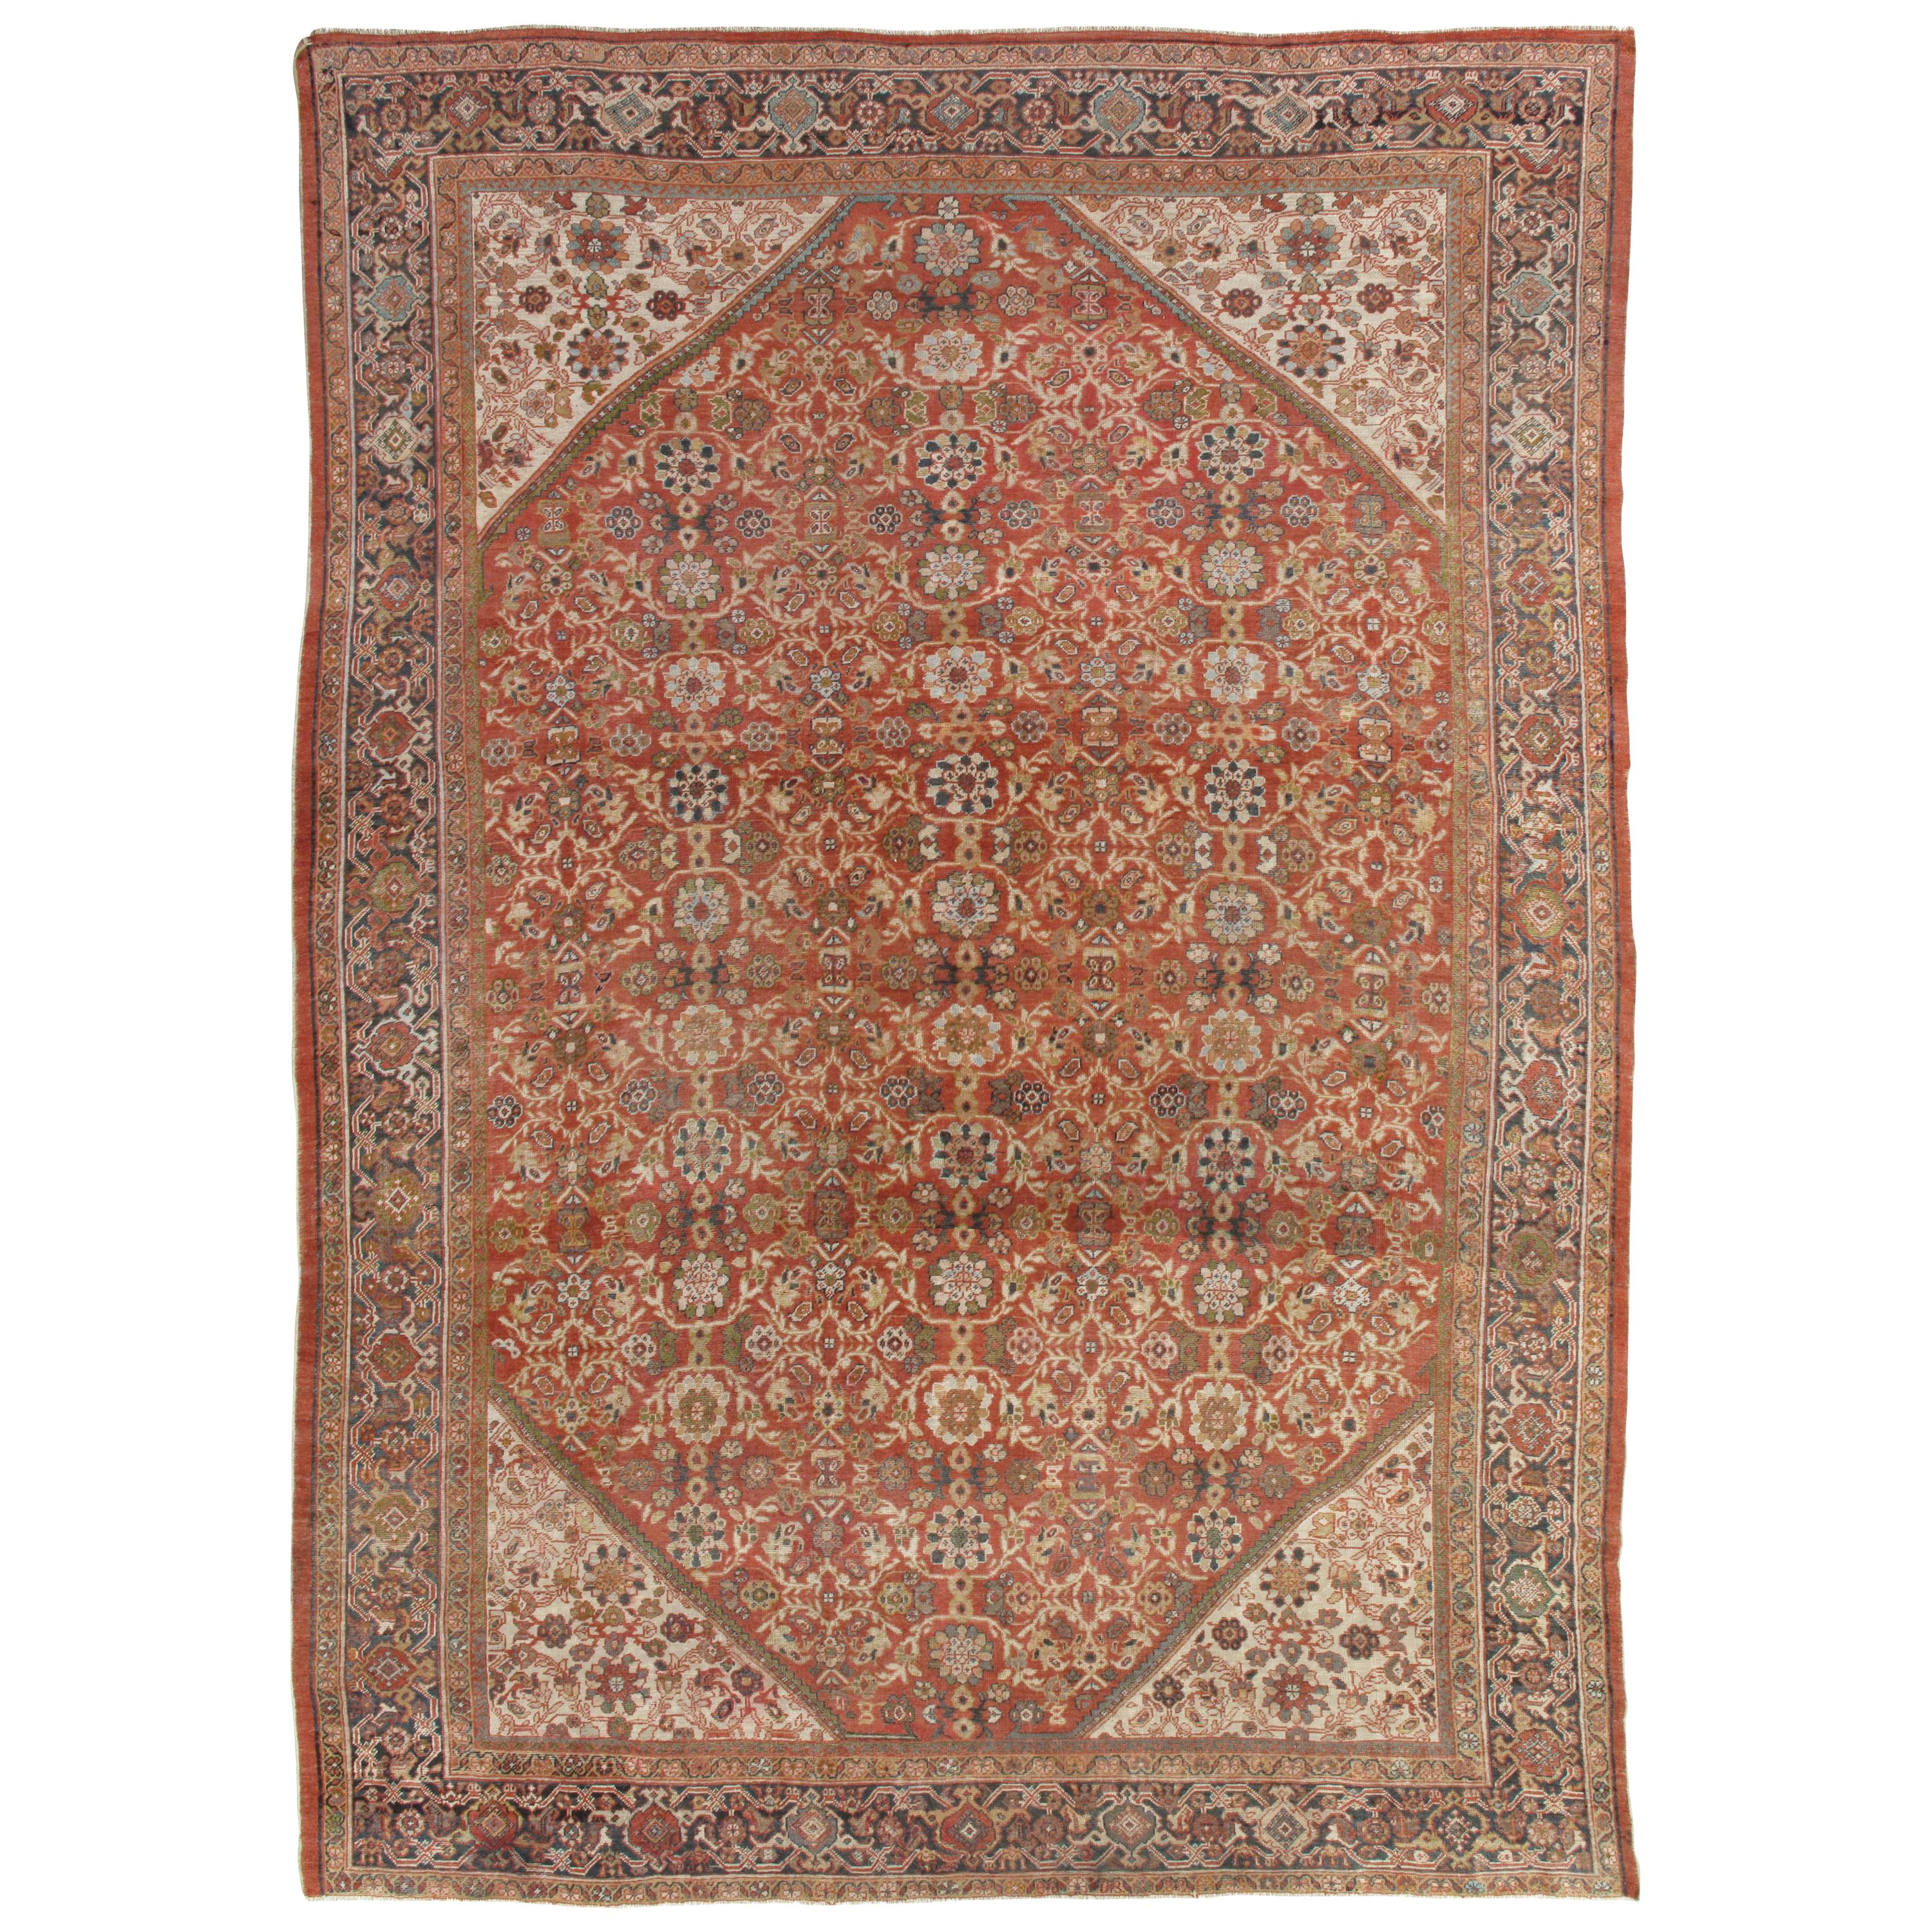 Hand Knotted Antique Persian Sultanabad Carpet, circa 1900